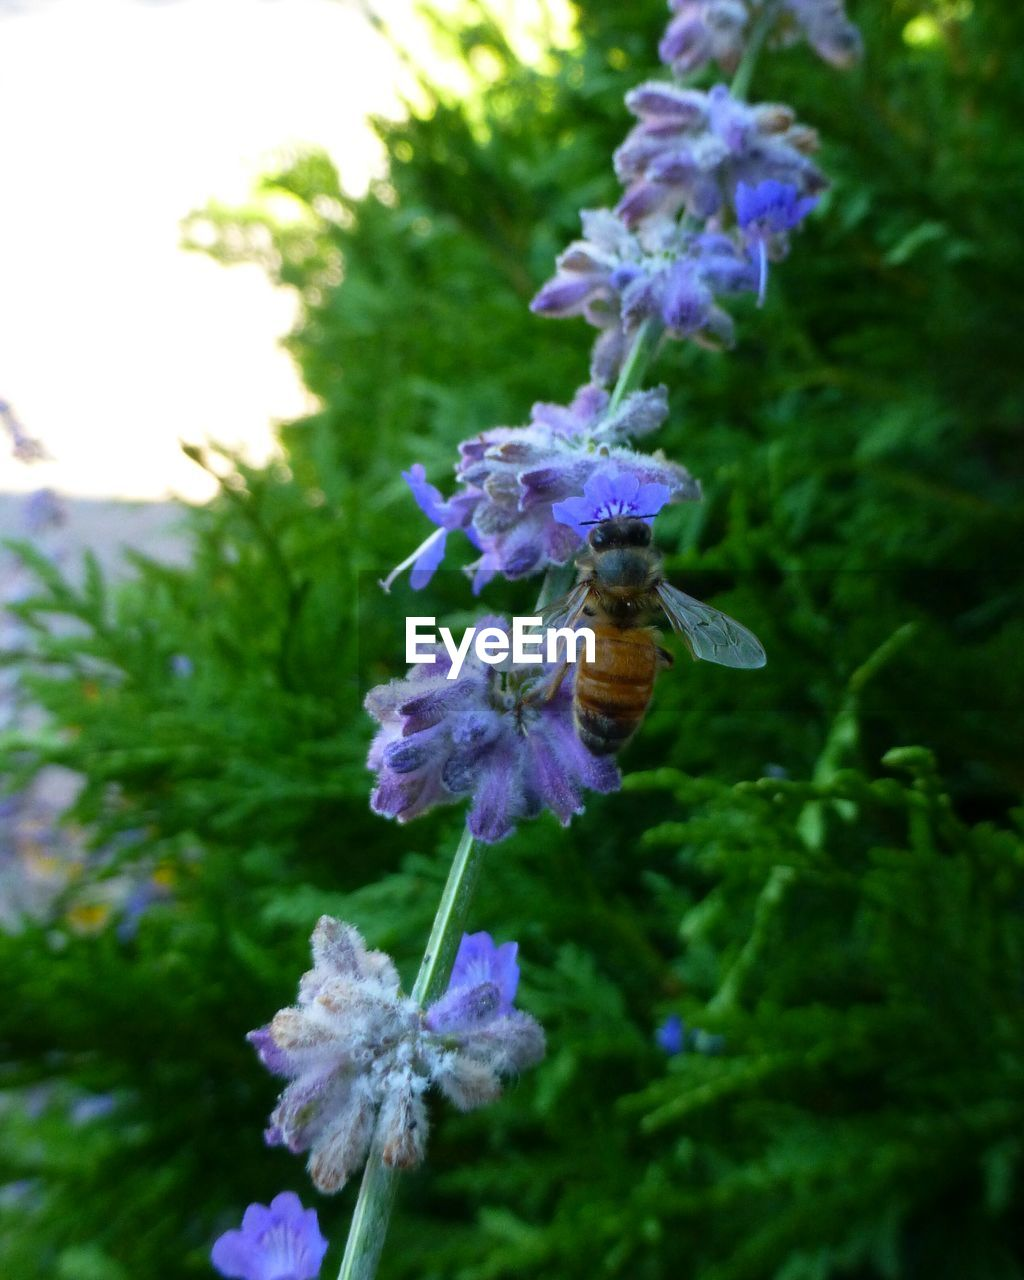 flower, fragility, beauty in nature, purple, nature, growth, petal, freshness, plant, no people, day, one animal, focus on foreground, outdoors, flower head, blooming, motion, animal themes, pollination, close-up, bee